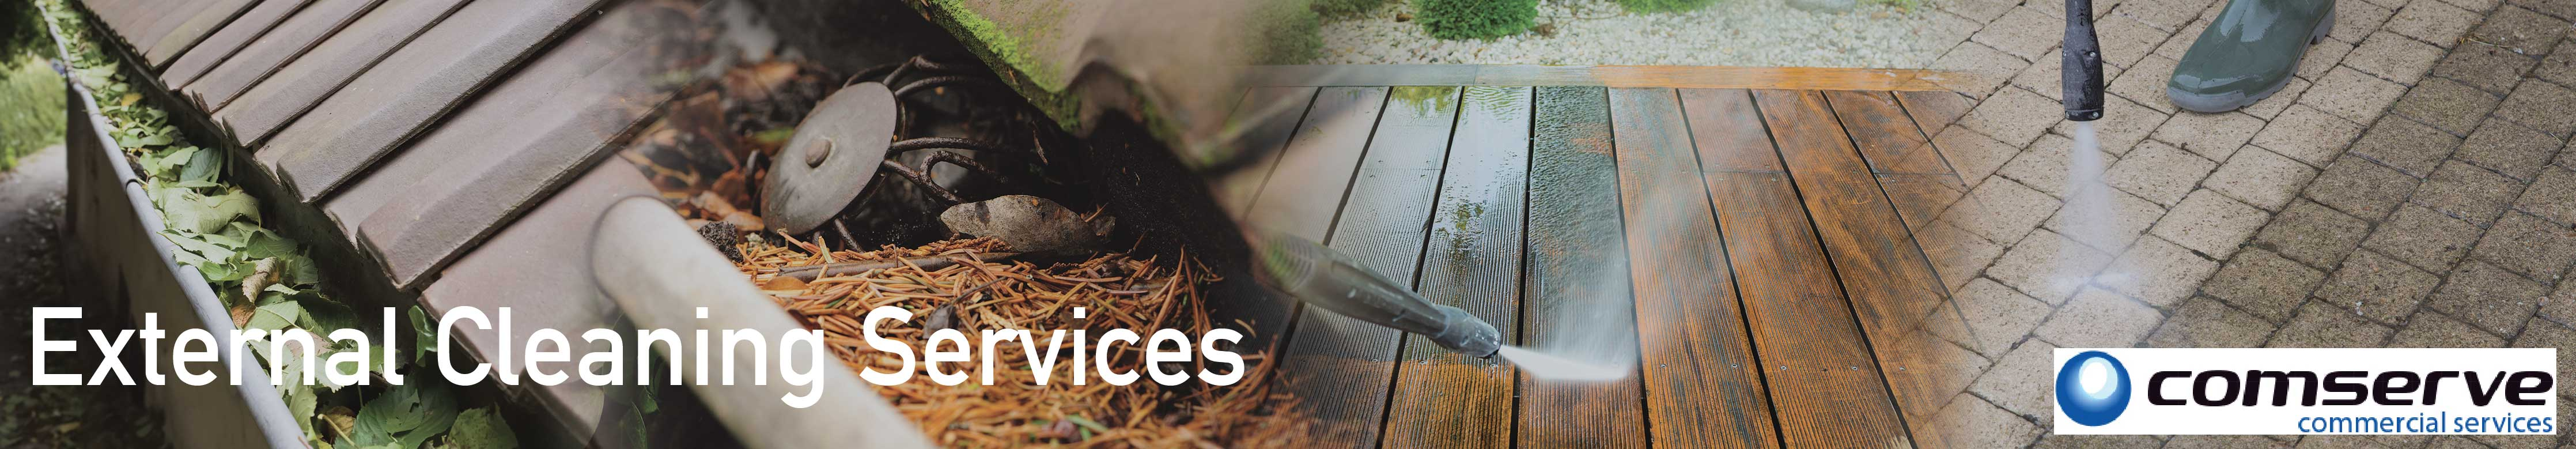 External Cleaning Services In Llanelli Comserve Ltd